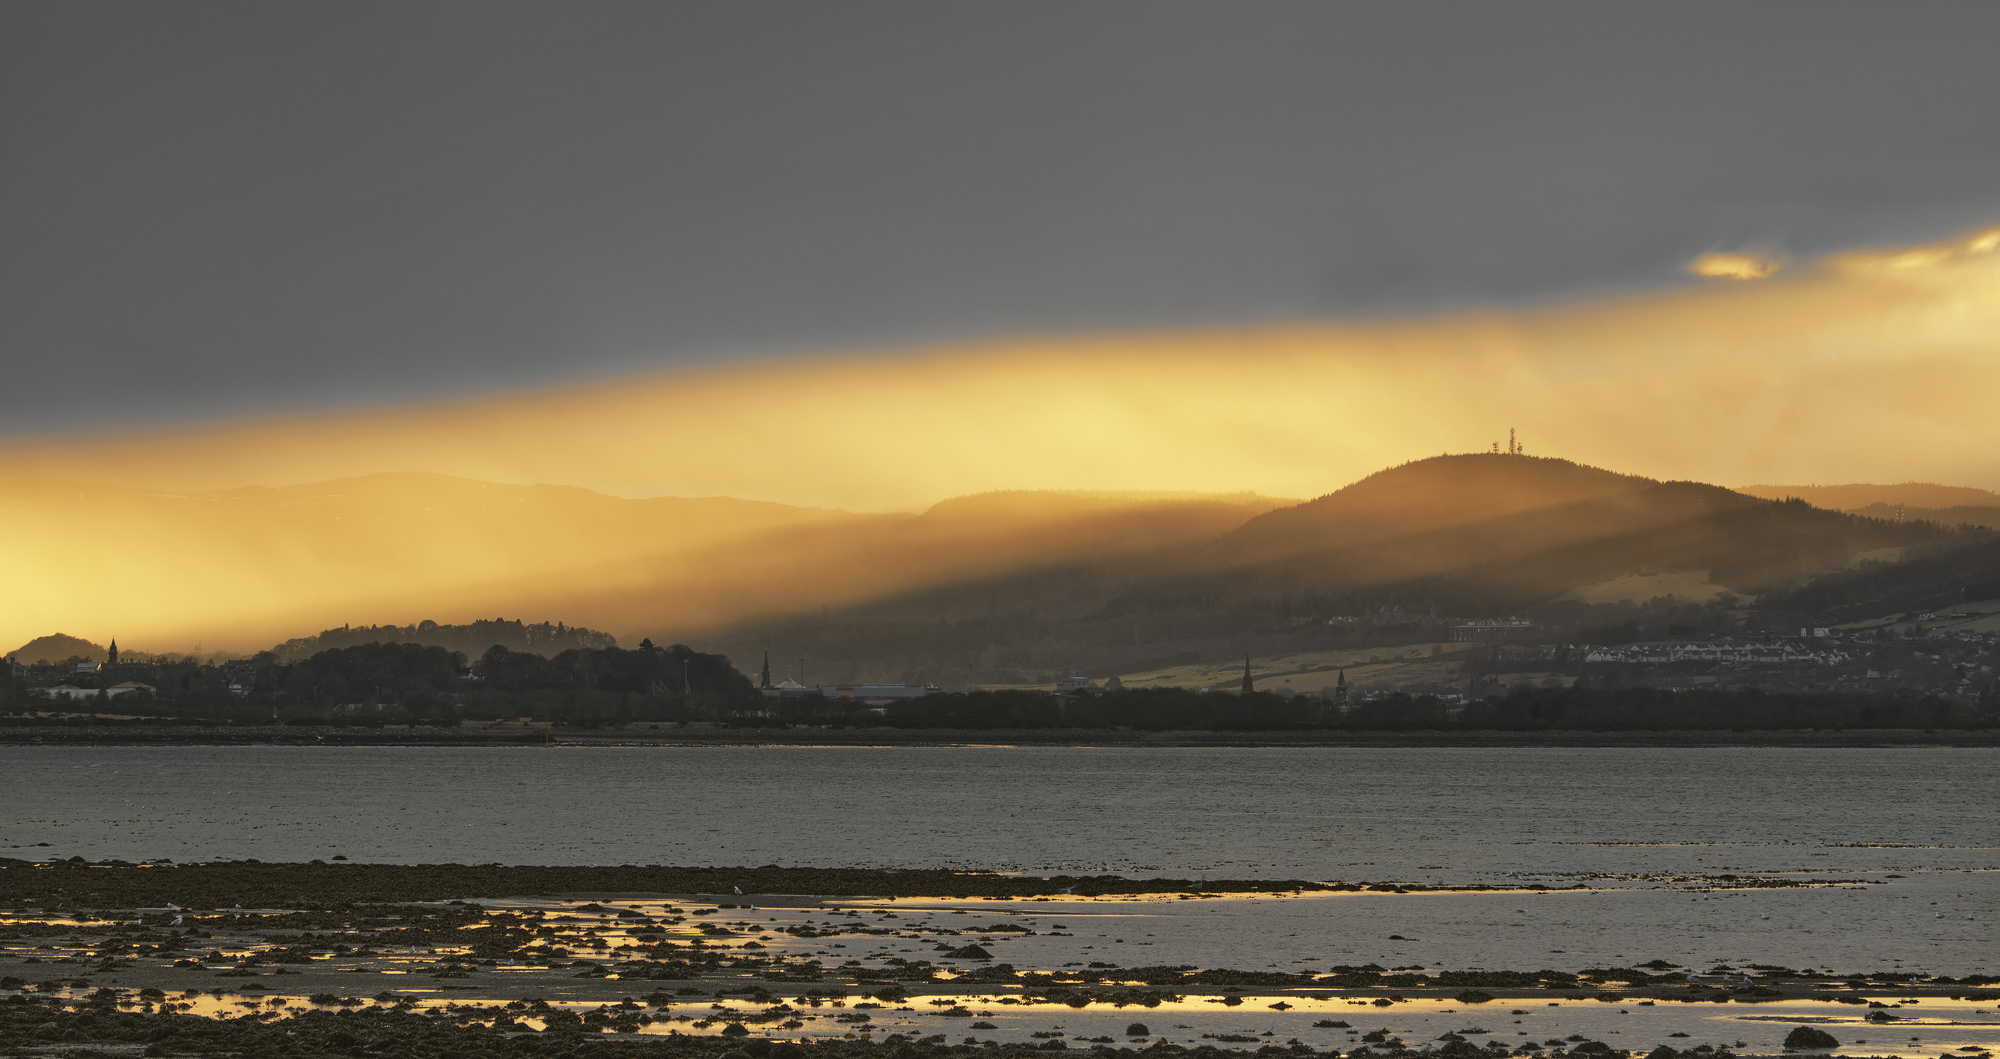 A beam of brilliant and intense golden sunlight blasted a hole through the grey winter clouds and painted the tops of the hills...